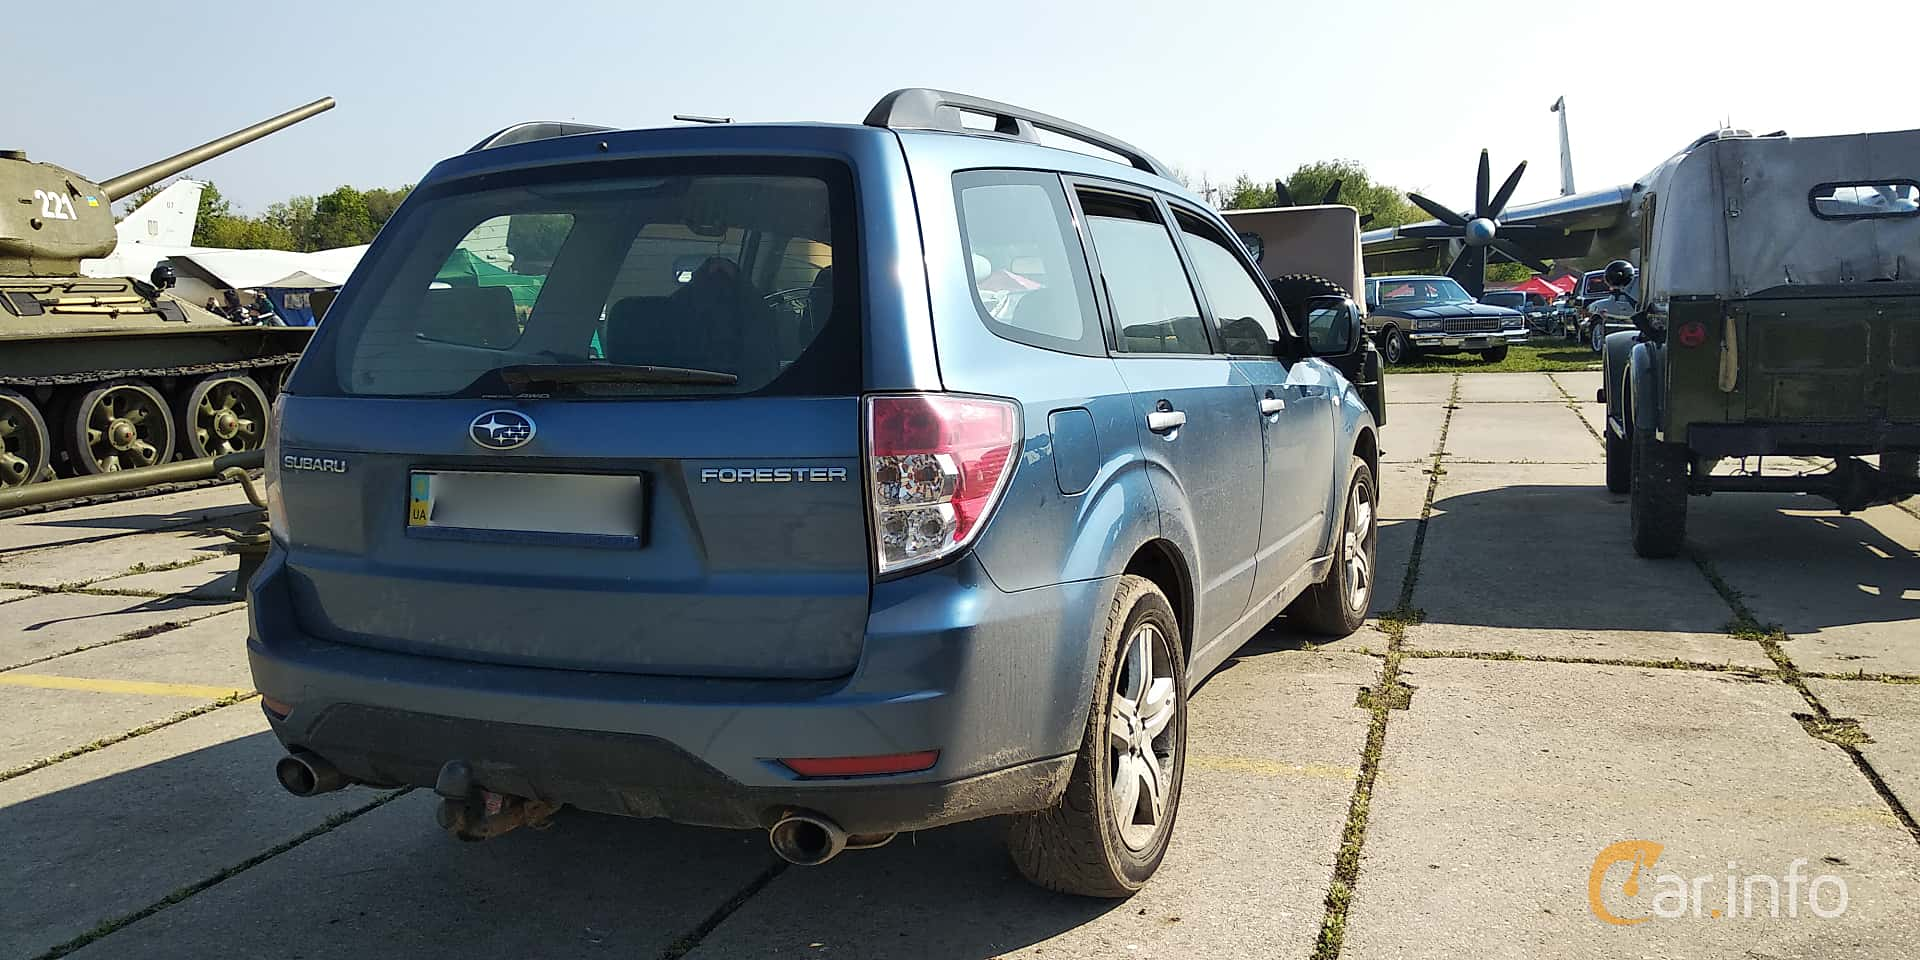 Subaru Forester 2008 at Old Car Land no.1 2019